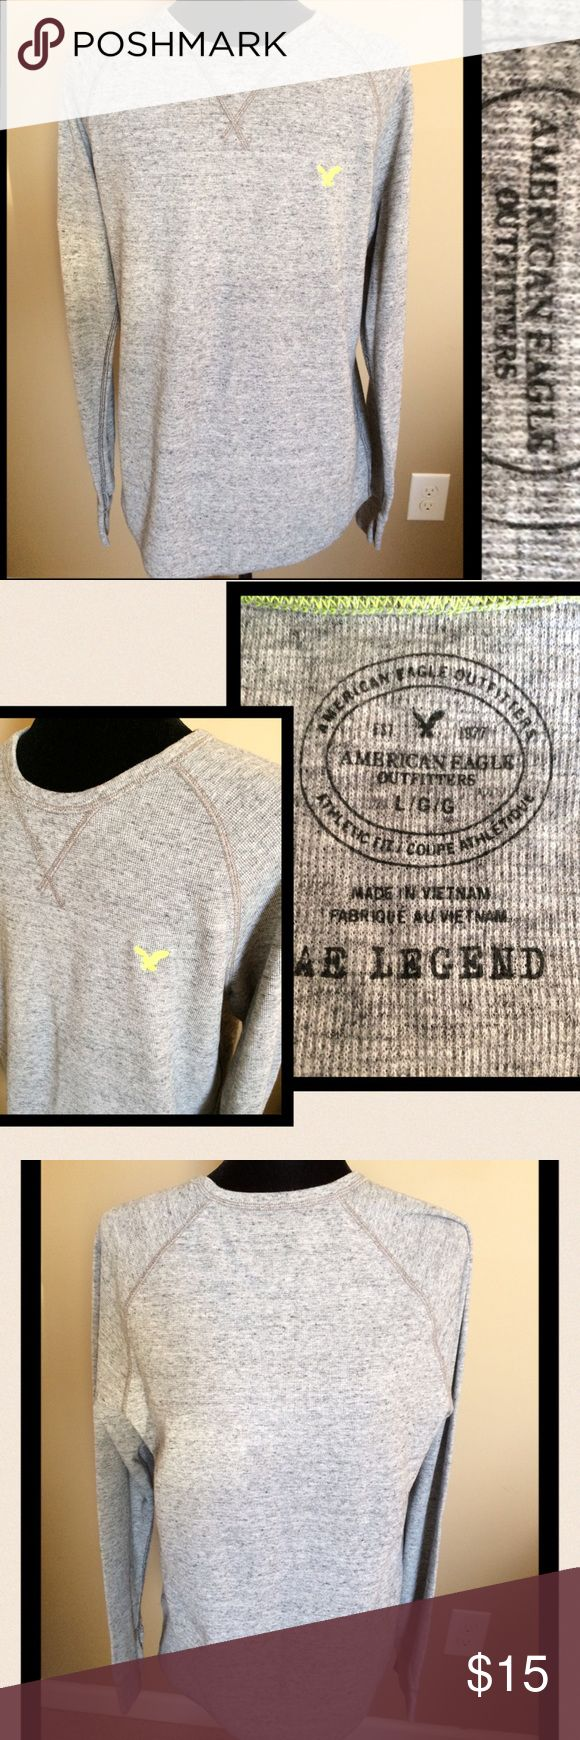 Men's American Eagle Gray Thermal, L Men's American Eagle Gray Thermal, L, like new, has neon green eagle accent, athletic fit  WILL BUNDLE FOR ADDITIONAL DISCOUNT ON SHIPPING AND CLOTHING American Eagle Outfitters Shirts Tees - Long Sleeve